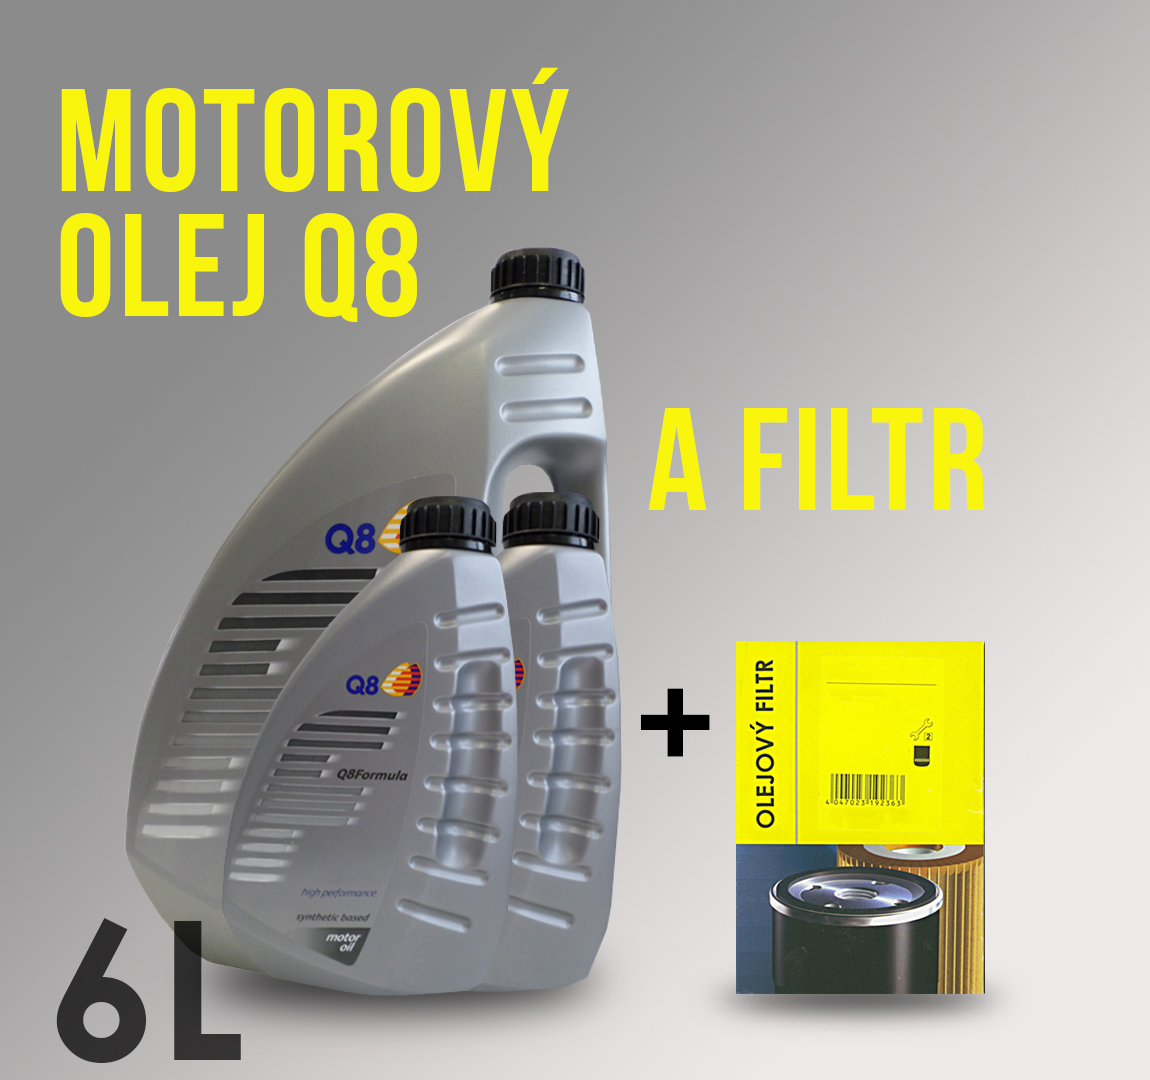 Motorový olej Q8 5W-30 a filtr pro Ford Tourneo Connect 1.8 TDCI 81 kW